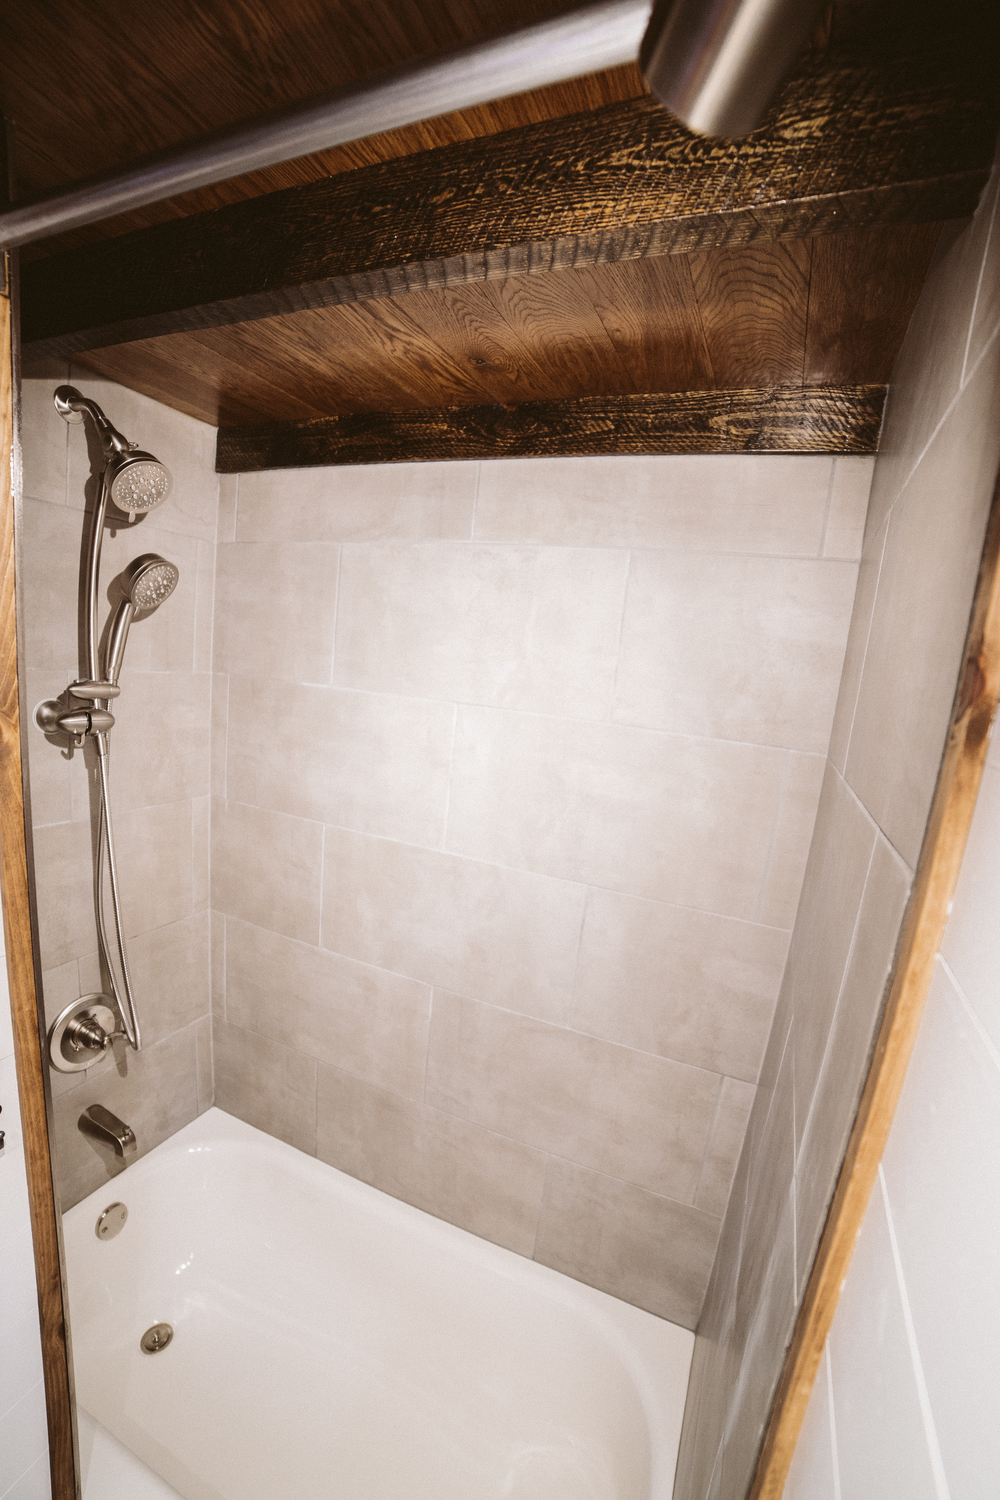 The Mayflower - Bathtub with grey tiled walls